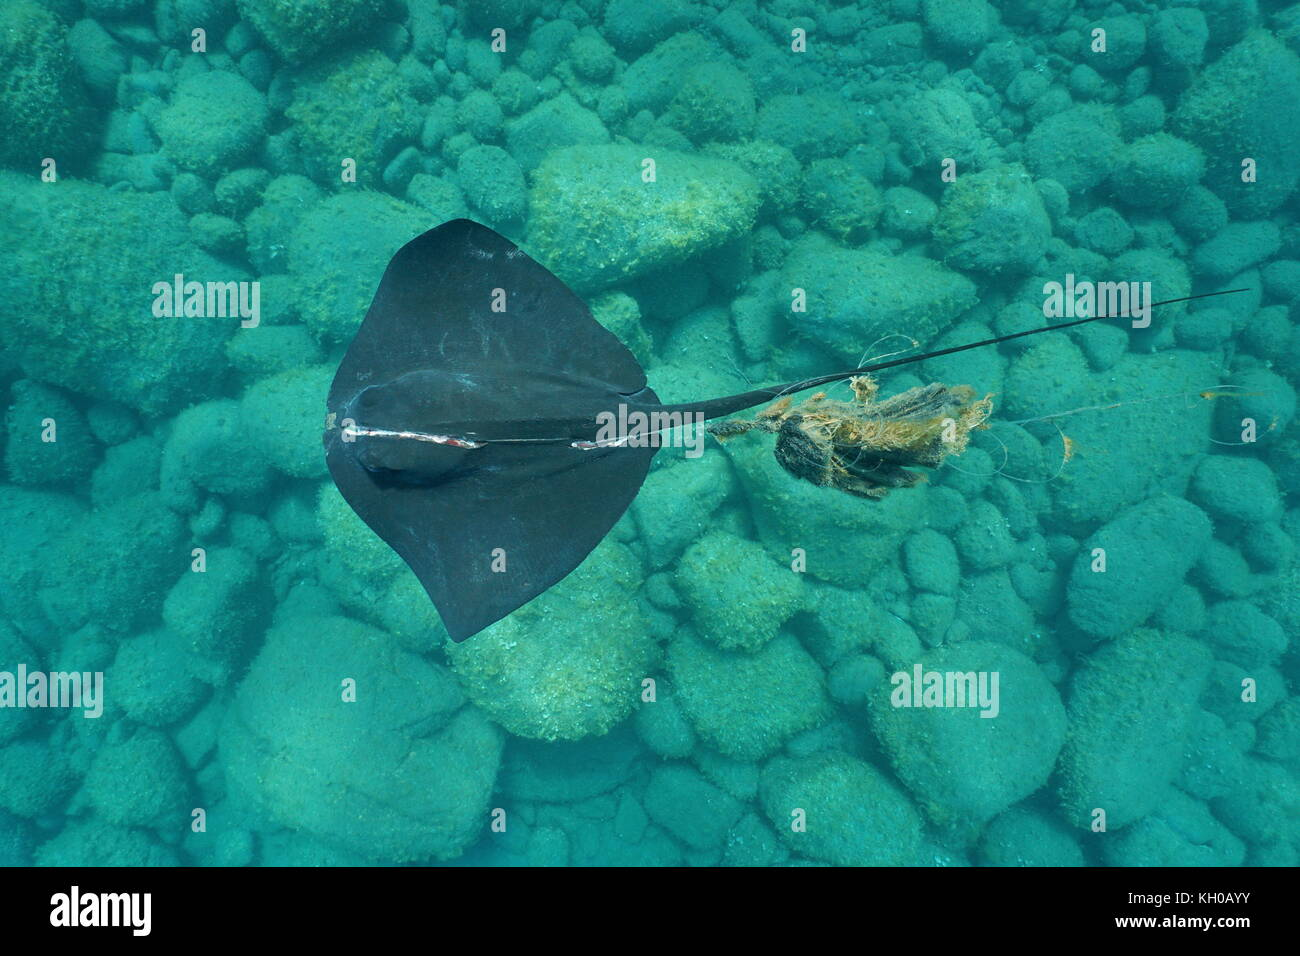 Underwater a common stingray, Dasyatis pastinaca, with a severe injury, tangled in a fishing line, seen from above, - Stock Image